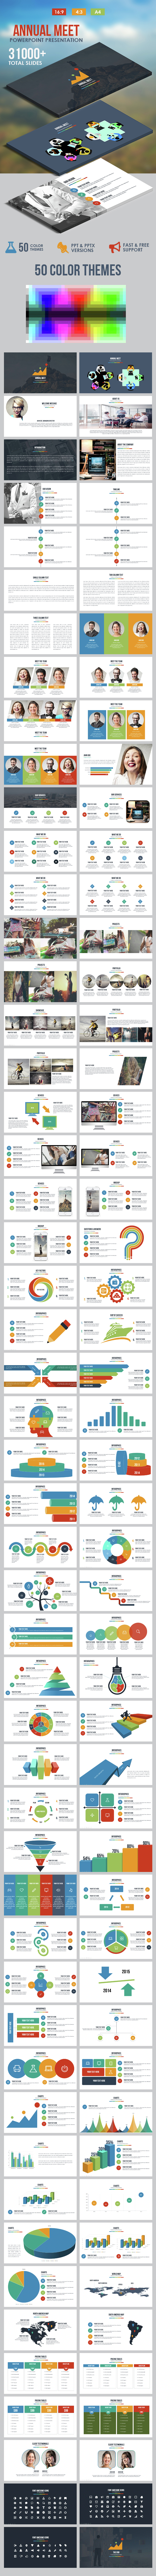 Annual Meet Powerpoint Template - Business PowerPoint Templates